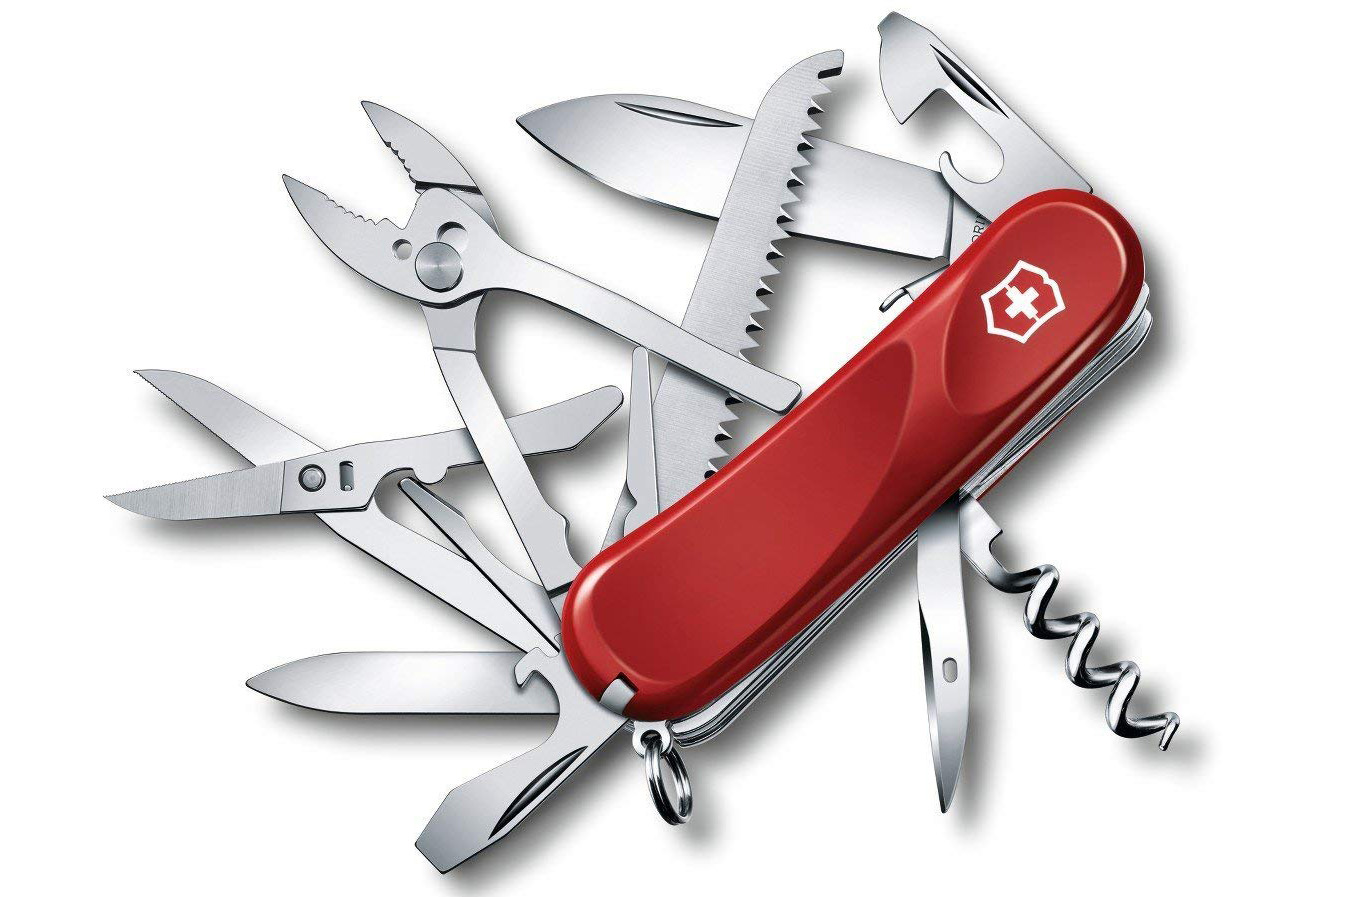 Victorinox Swiss Army Evolution S52 Pocket Knife